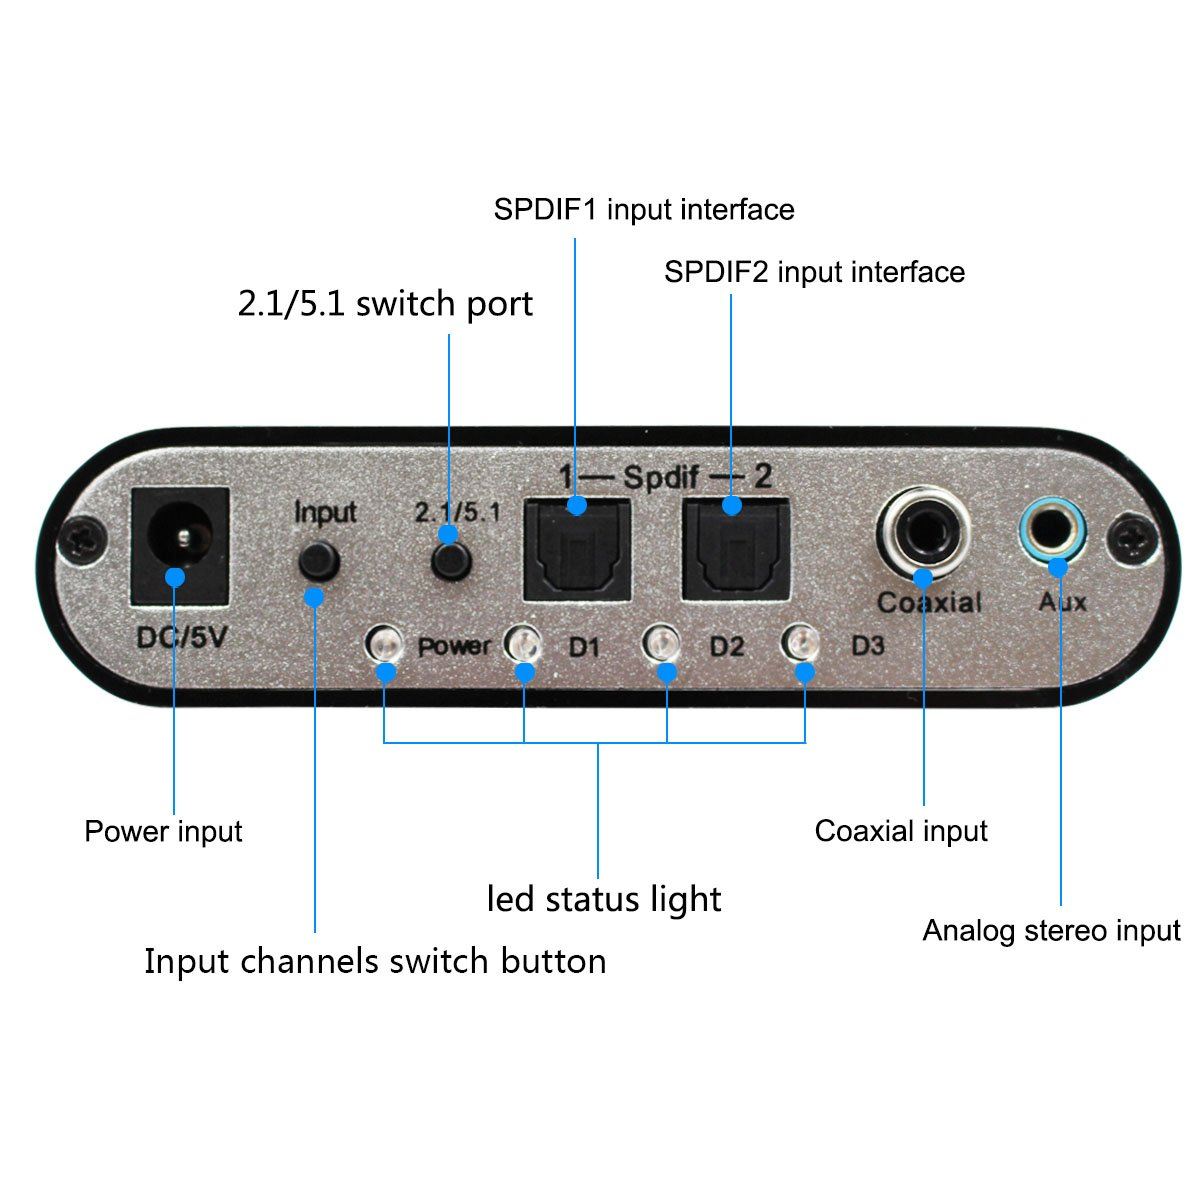 Amazon.com: Wiistar 5.1 Channel AC3/DTS Audio Gear Digital Surround Sound Rush Decoder HD player with USB Port: Home Audio & Theater